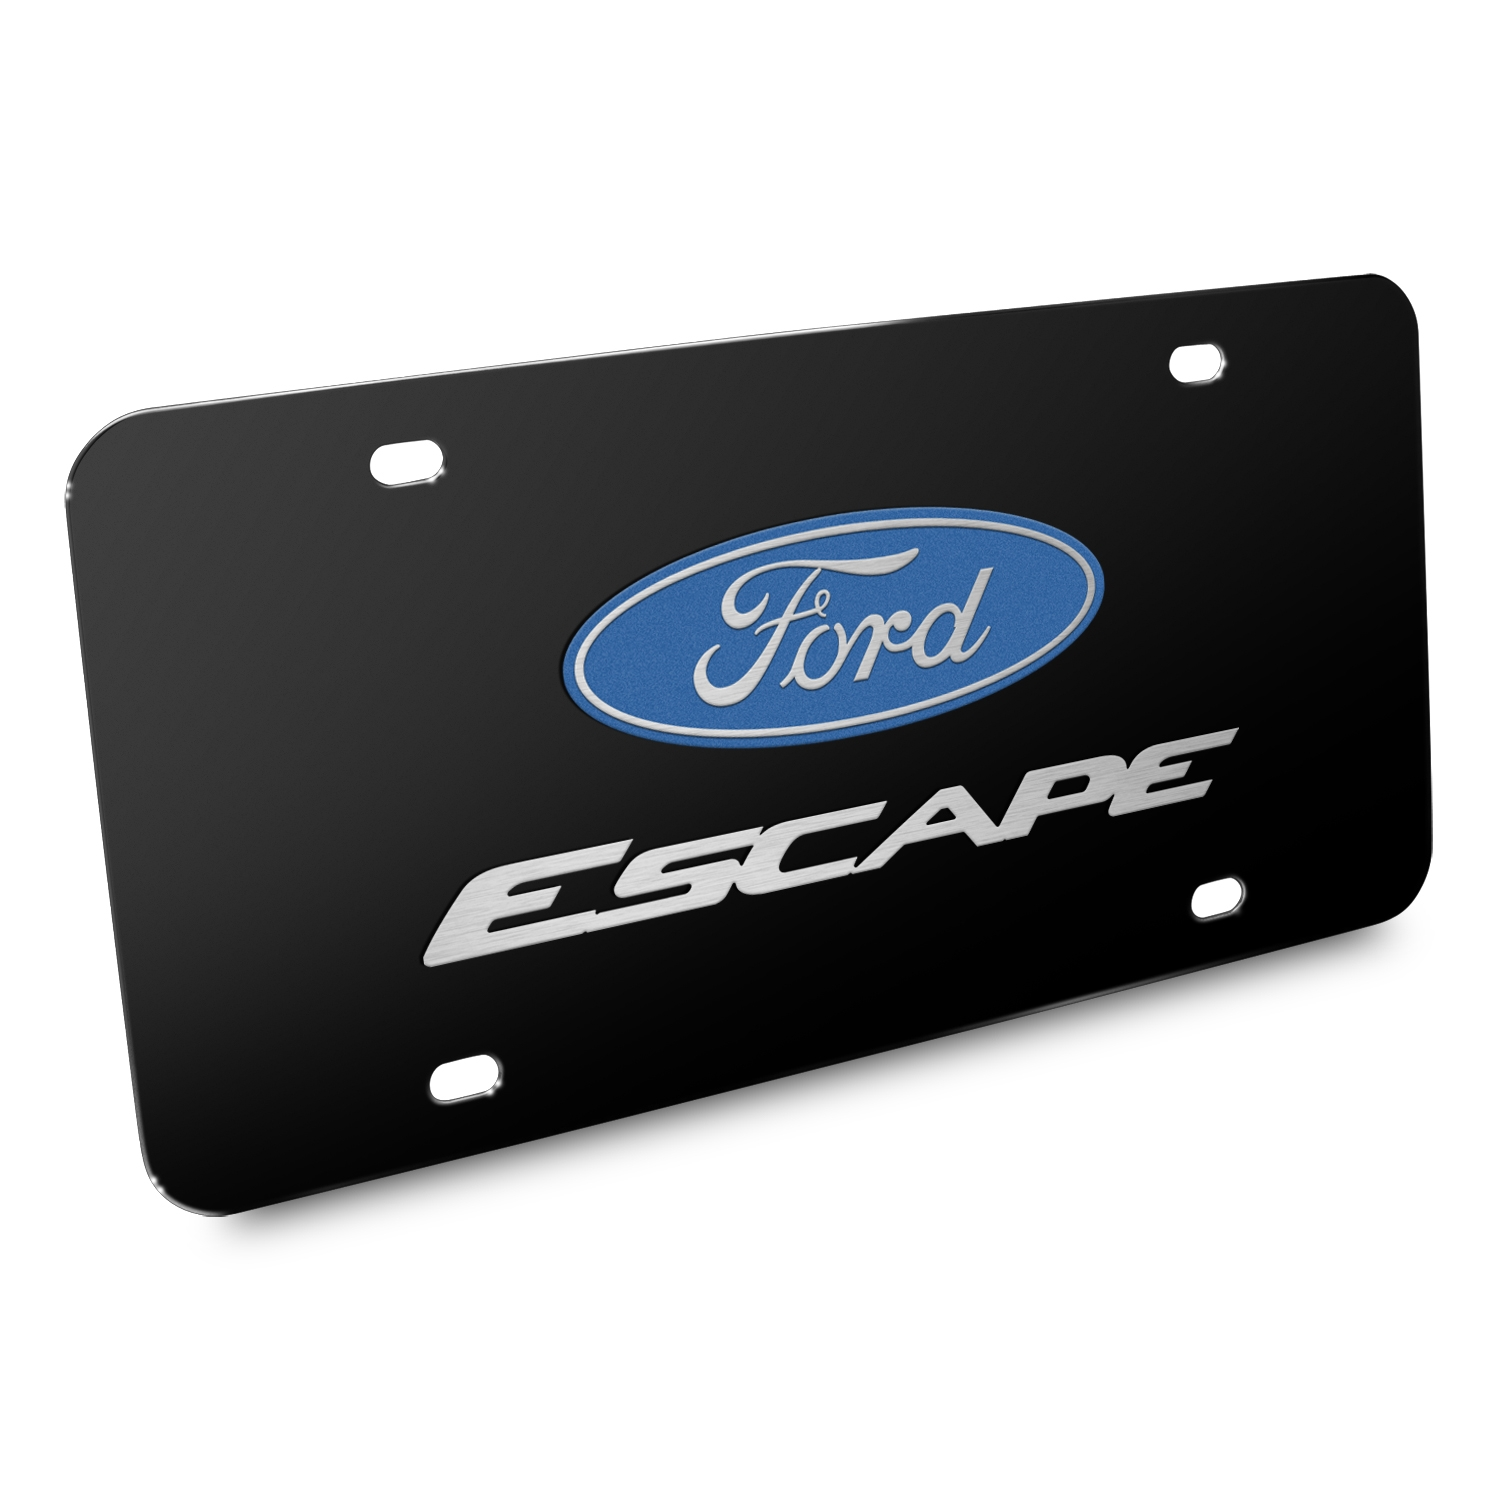 Ford Escape 3D Dual Logo Black Stainless Steel License Plate